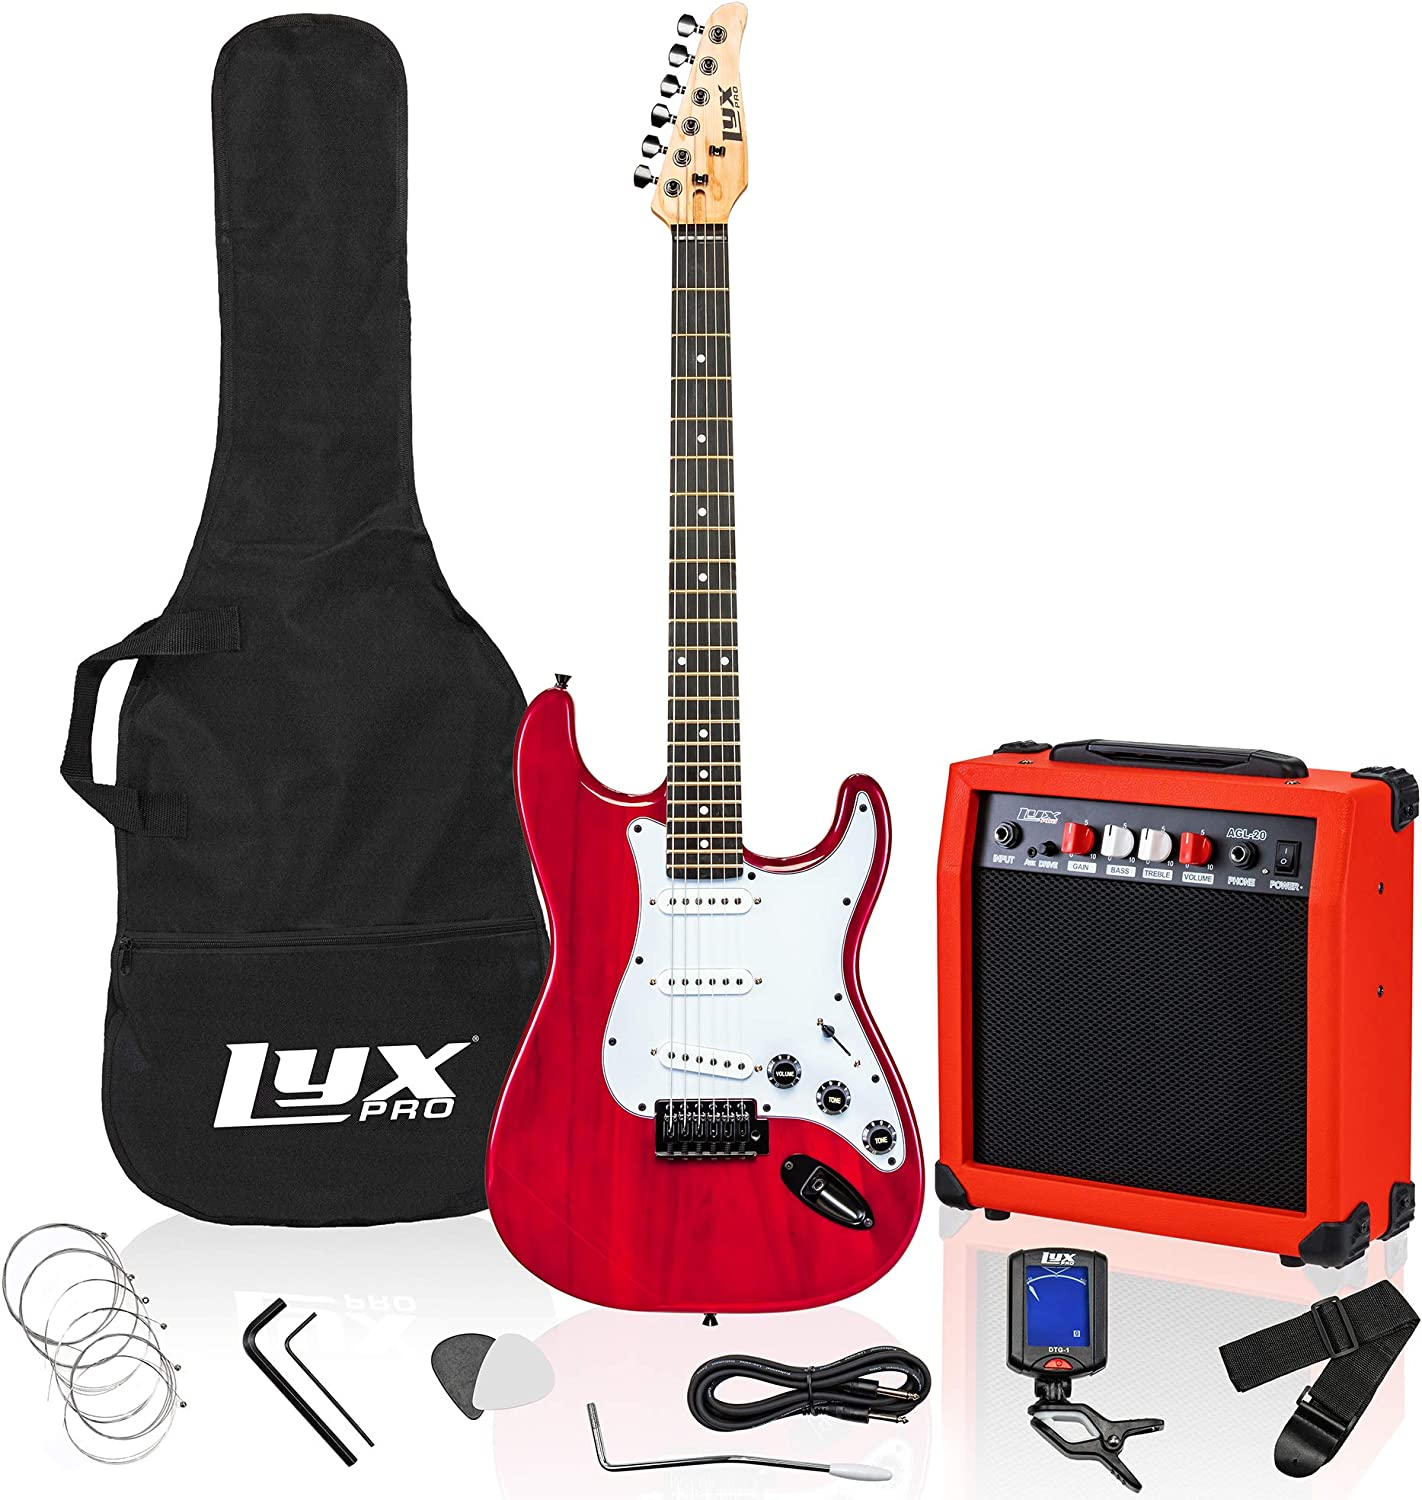 Best Cheap Electric Guitar for beginners (Image Source: Amazon)